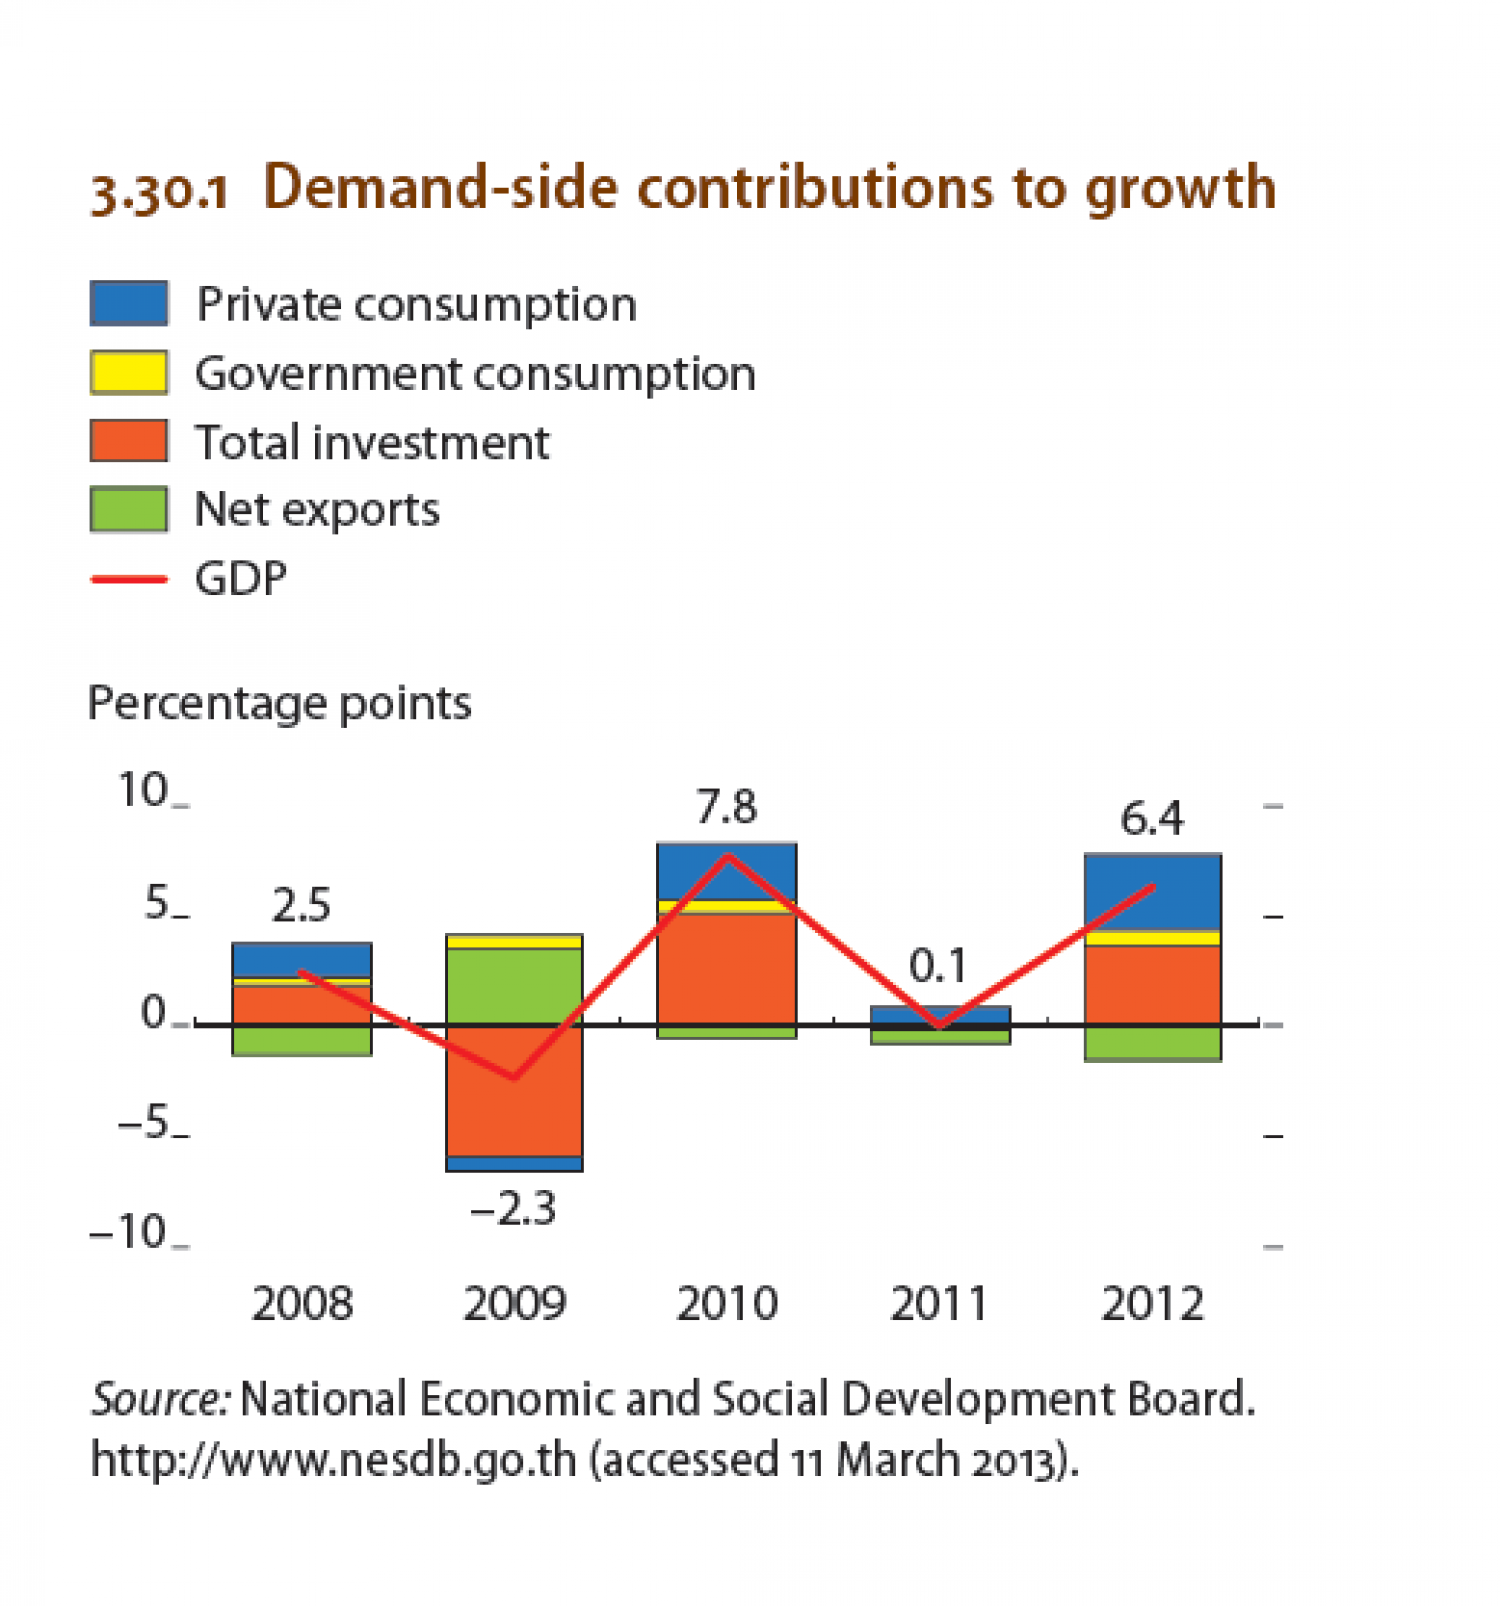 Thailand : Demand-side contributions to growth Infographic